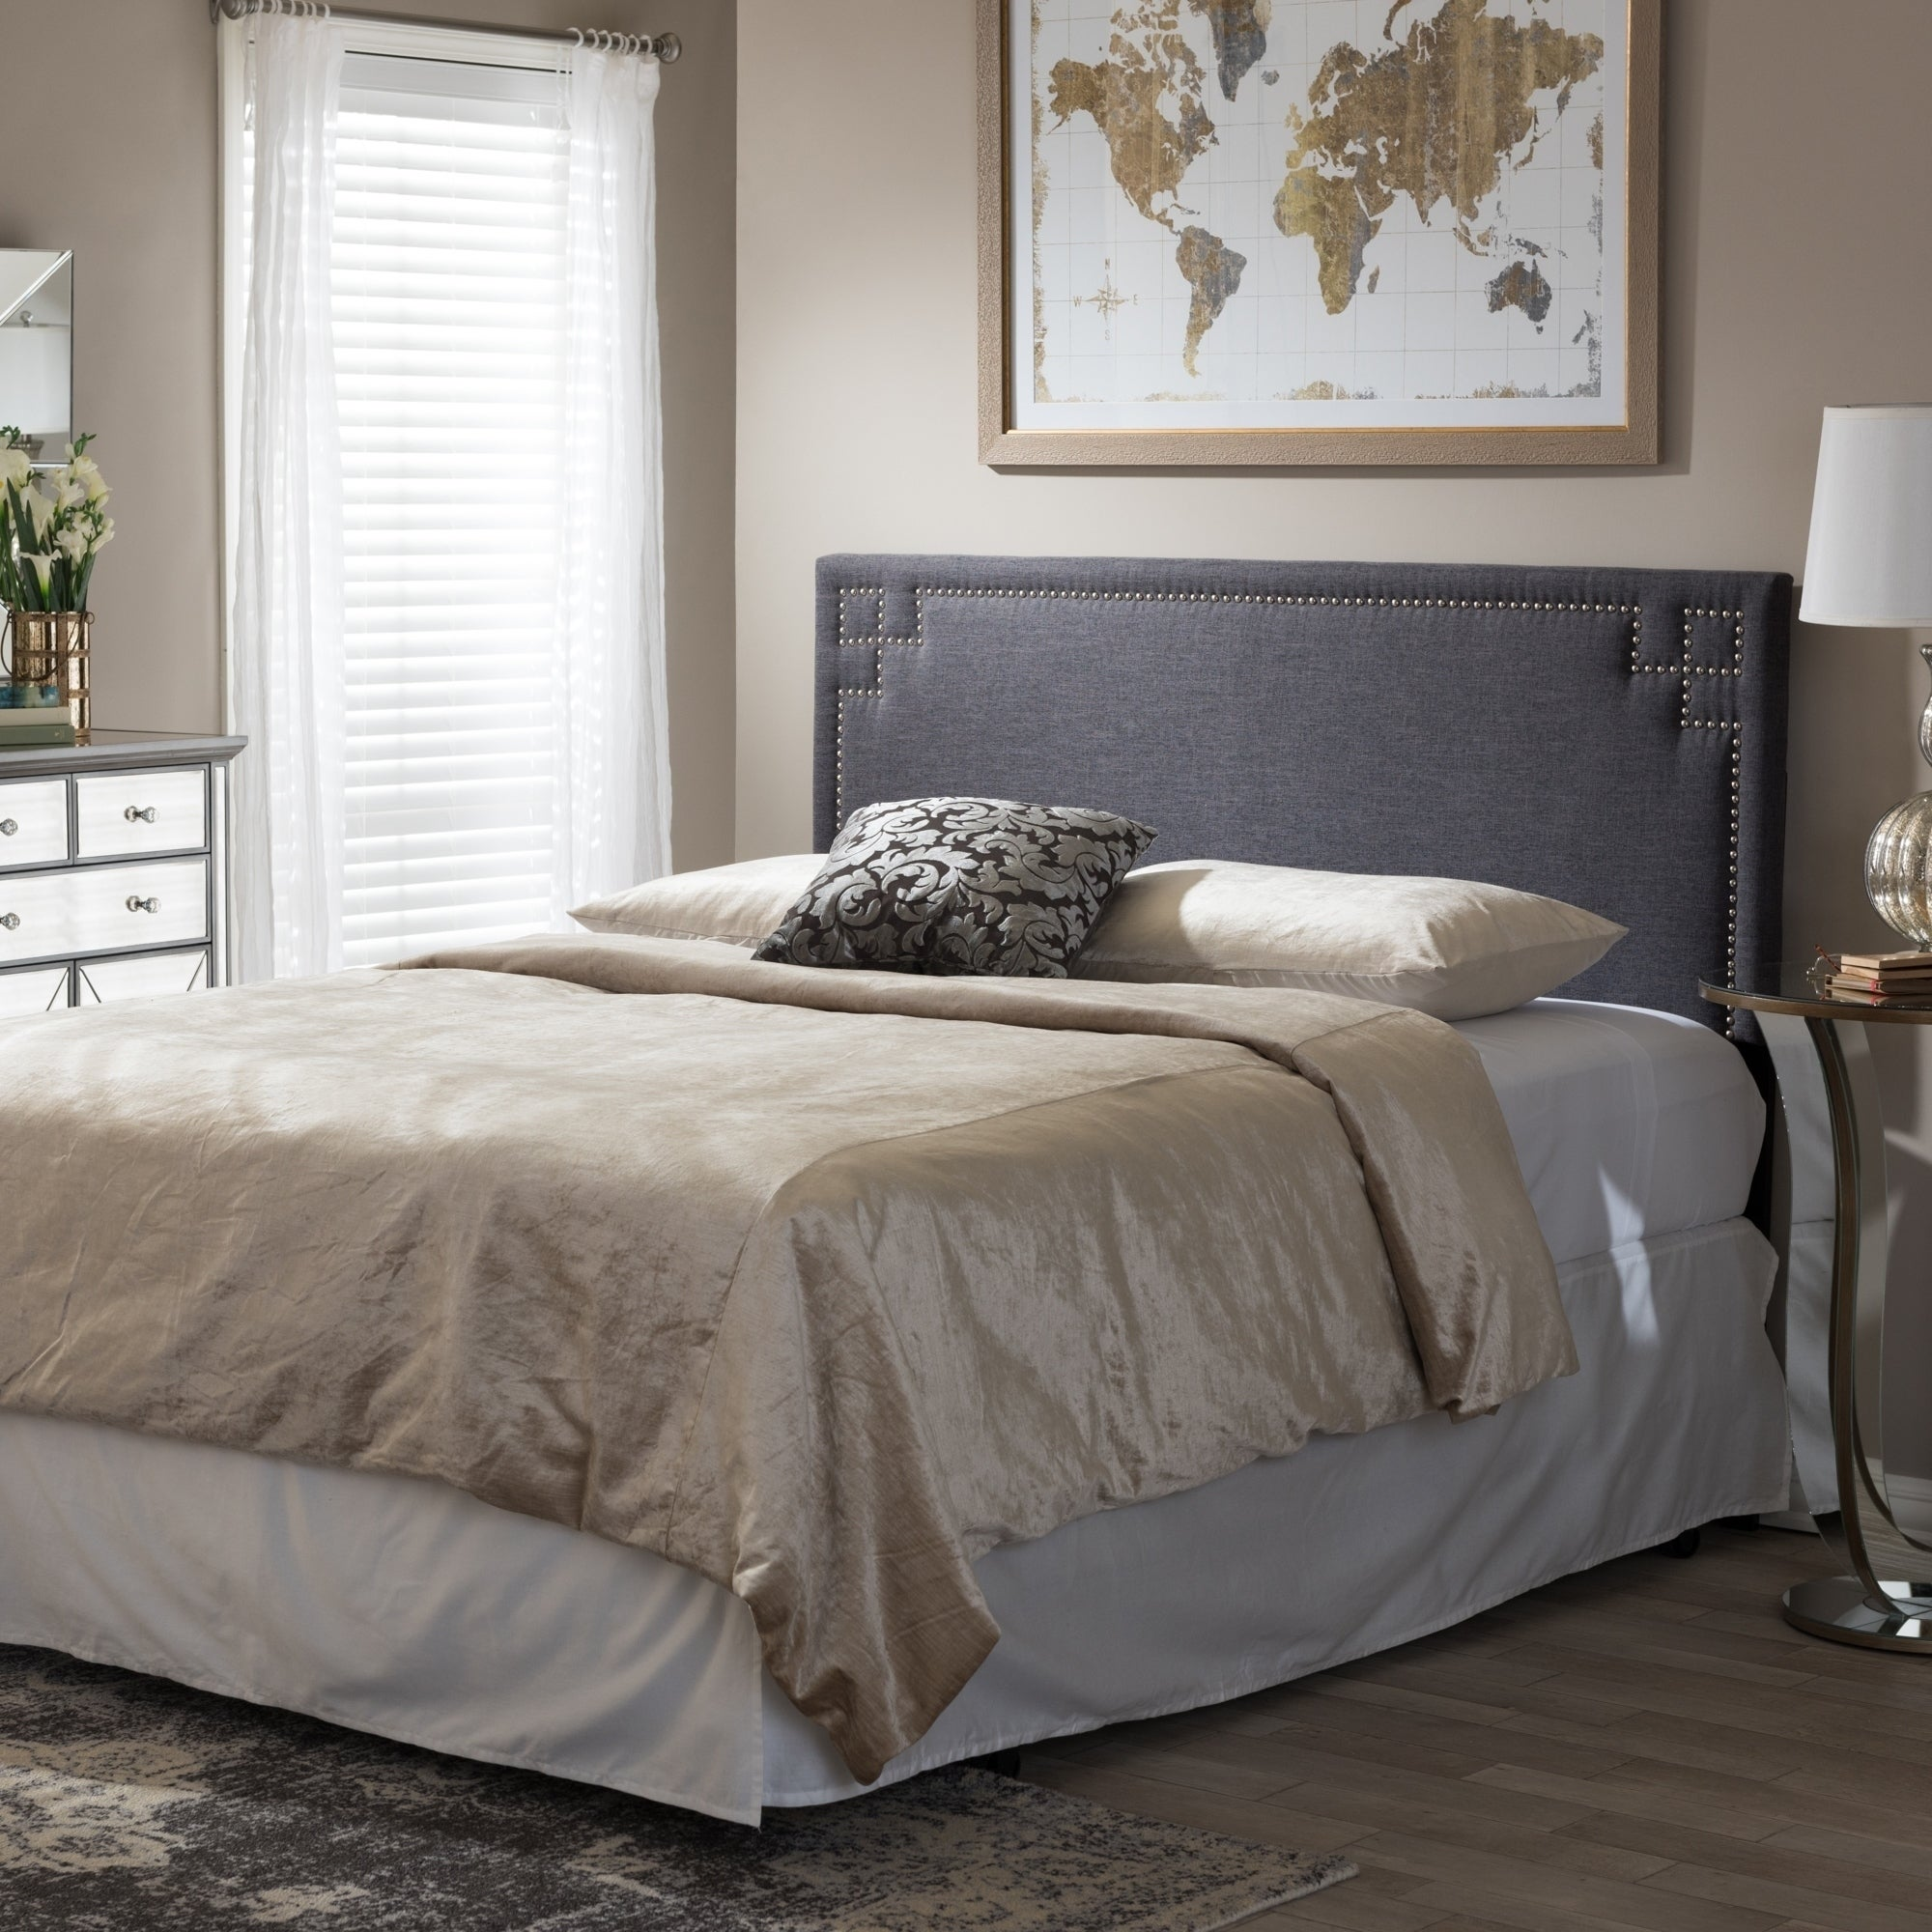 woven today headboard dark king grey upholstered shipping home free tribecca overstock linen garden porter inspire by q product classic